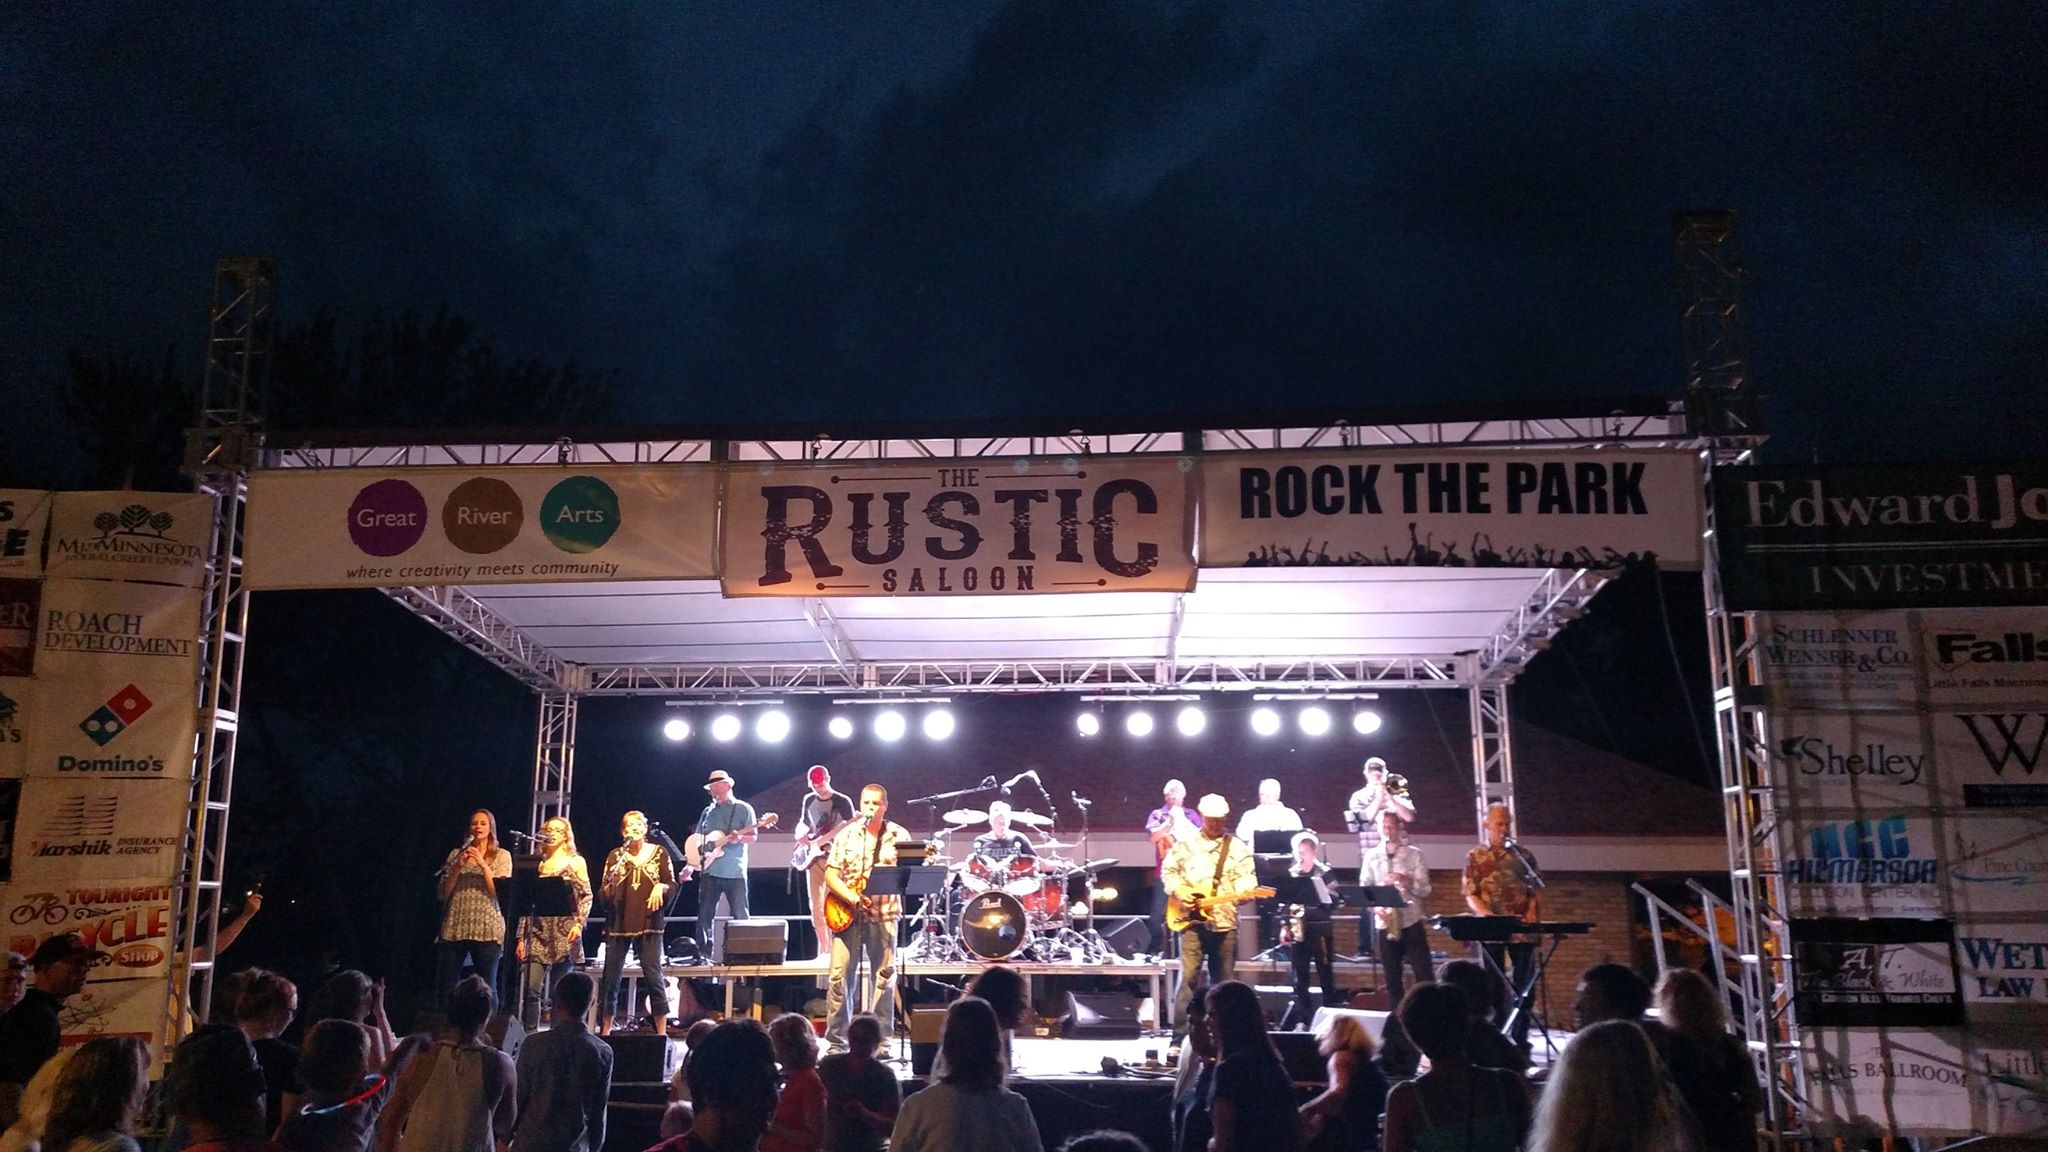 Great River Arts: Rock the Park Photo